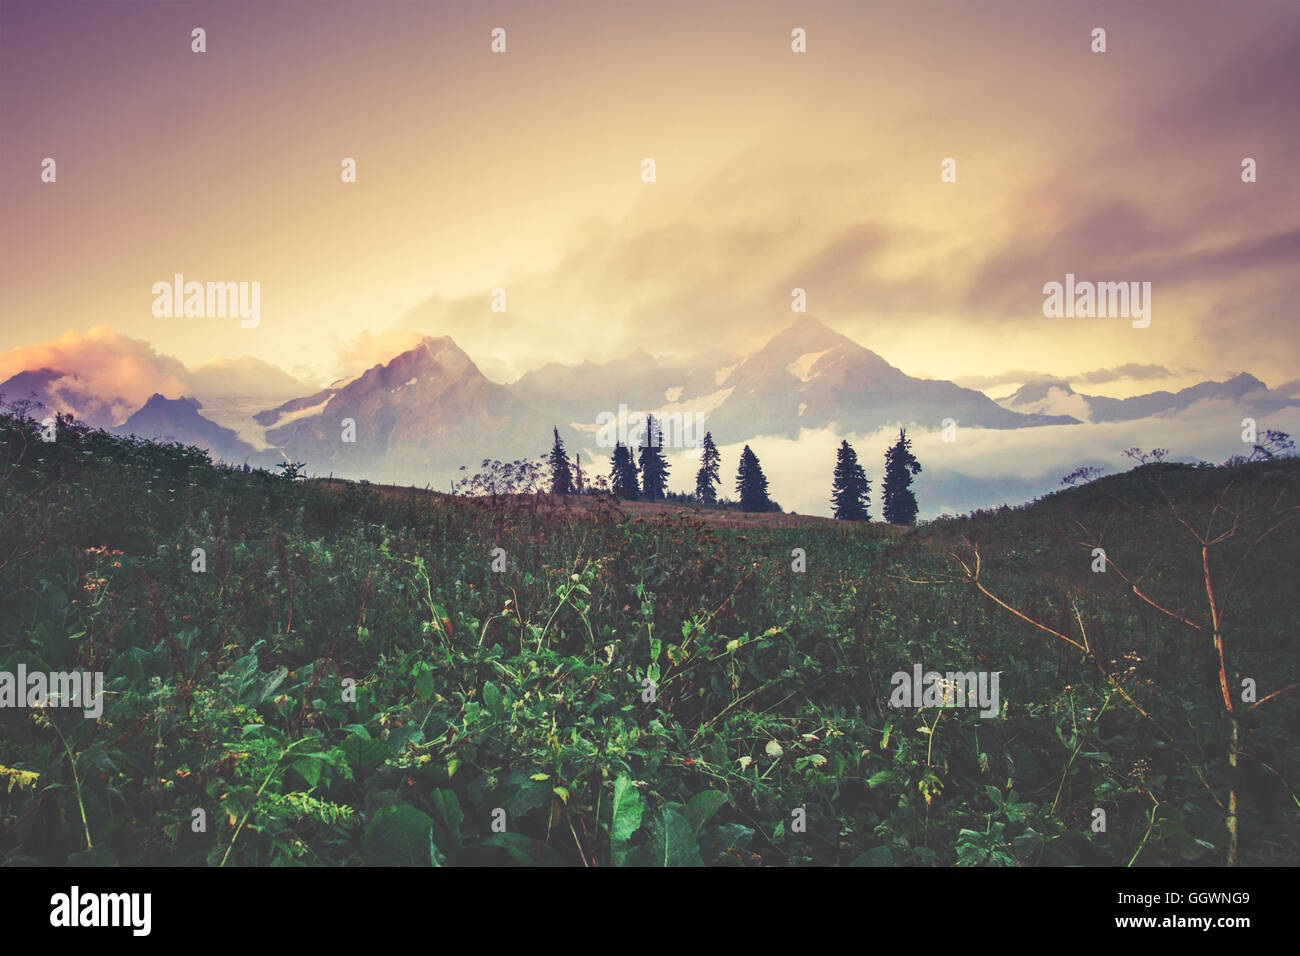 Sunset Mountains beautiful landscape summer travel scenic view - Stock Image